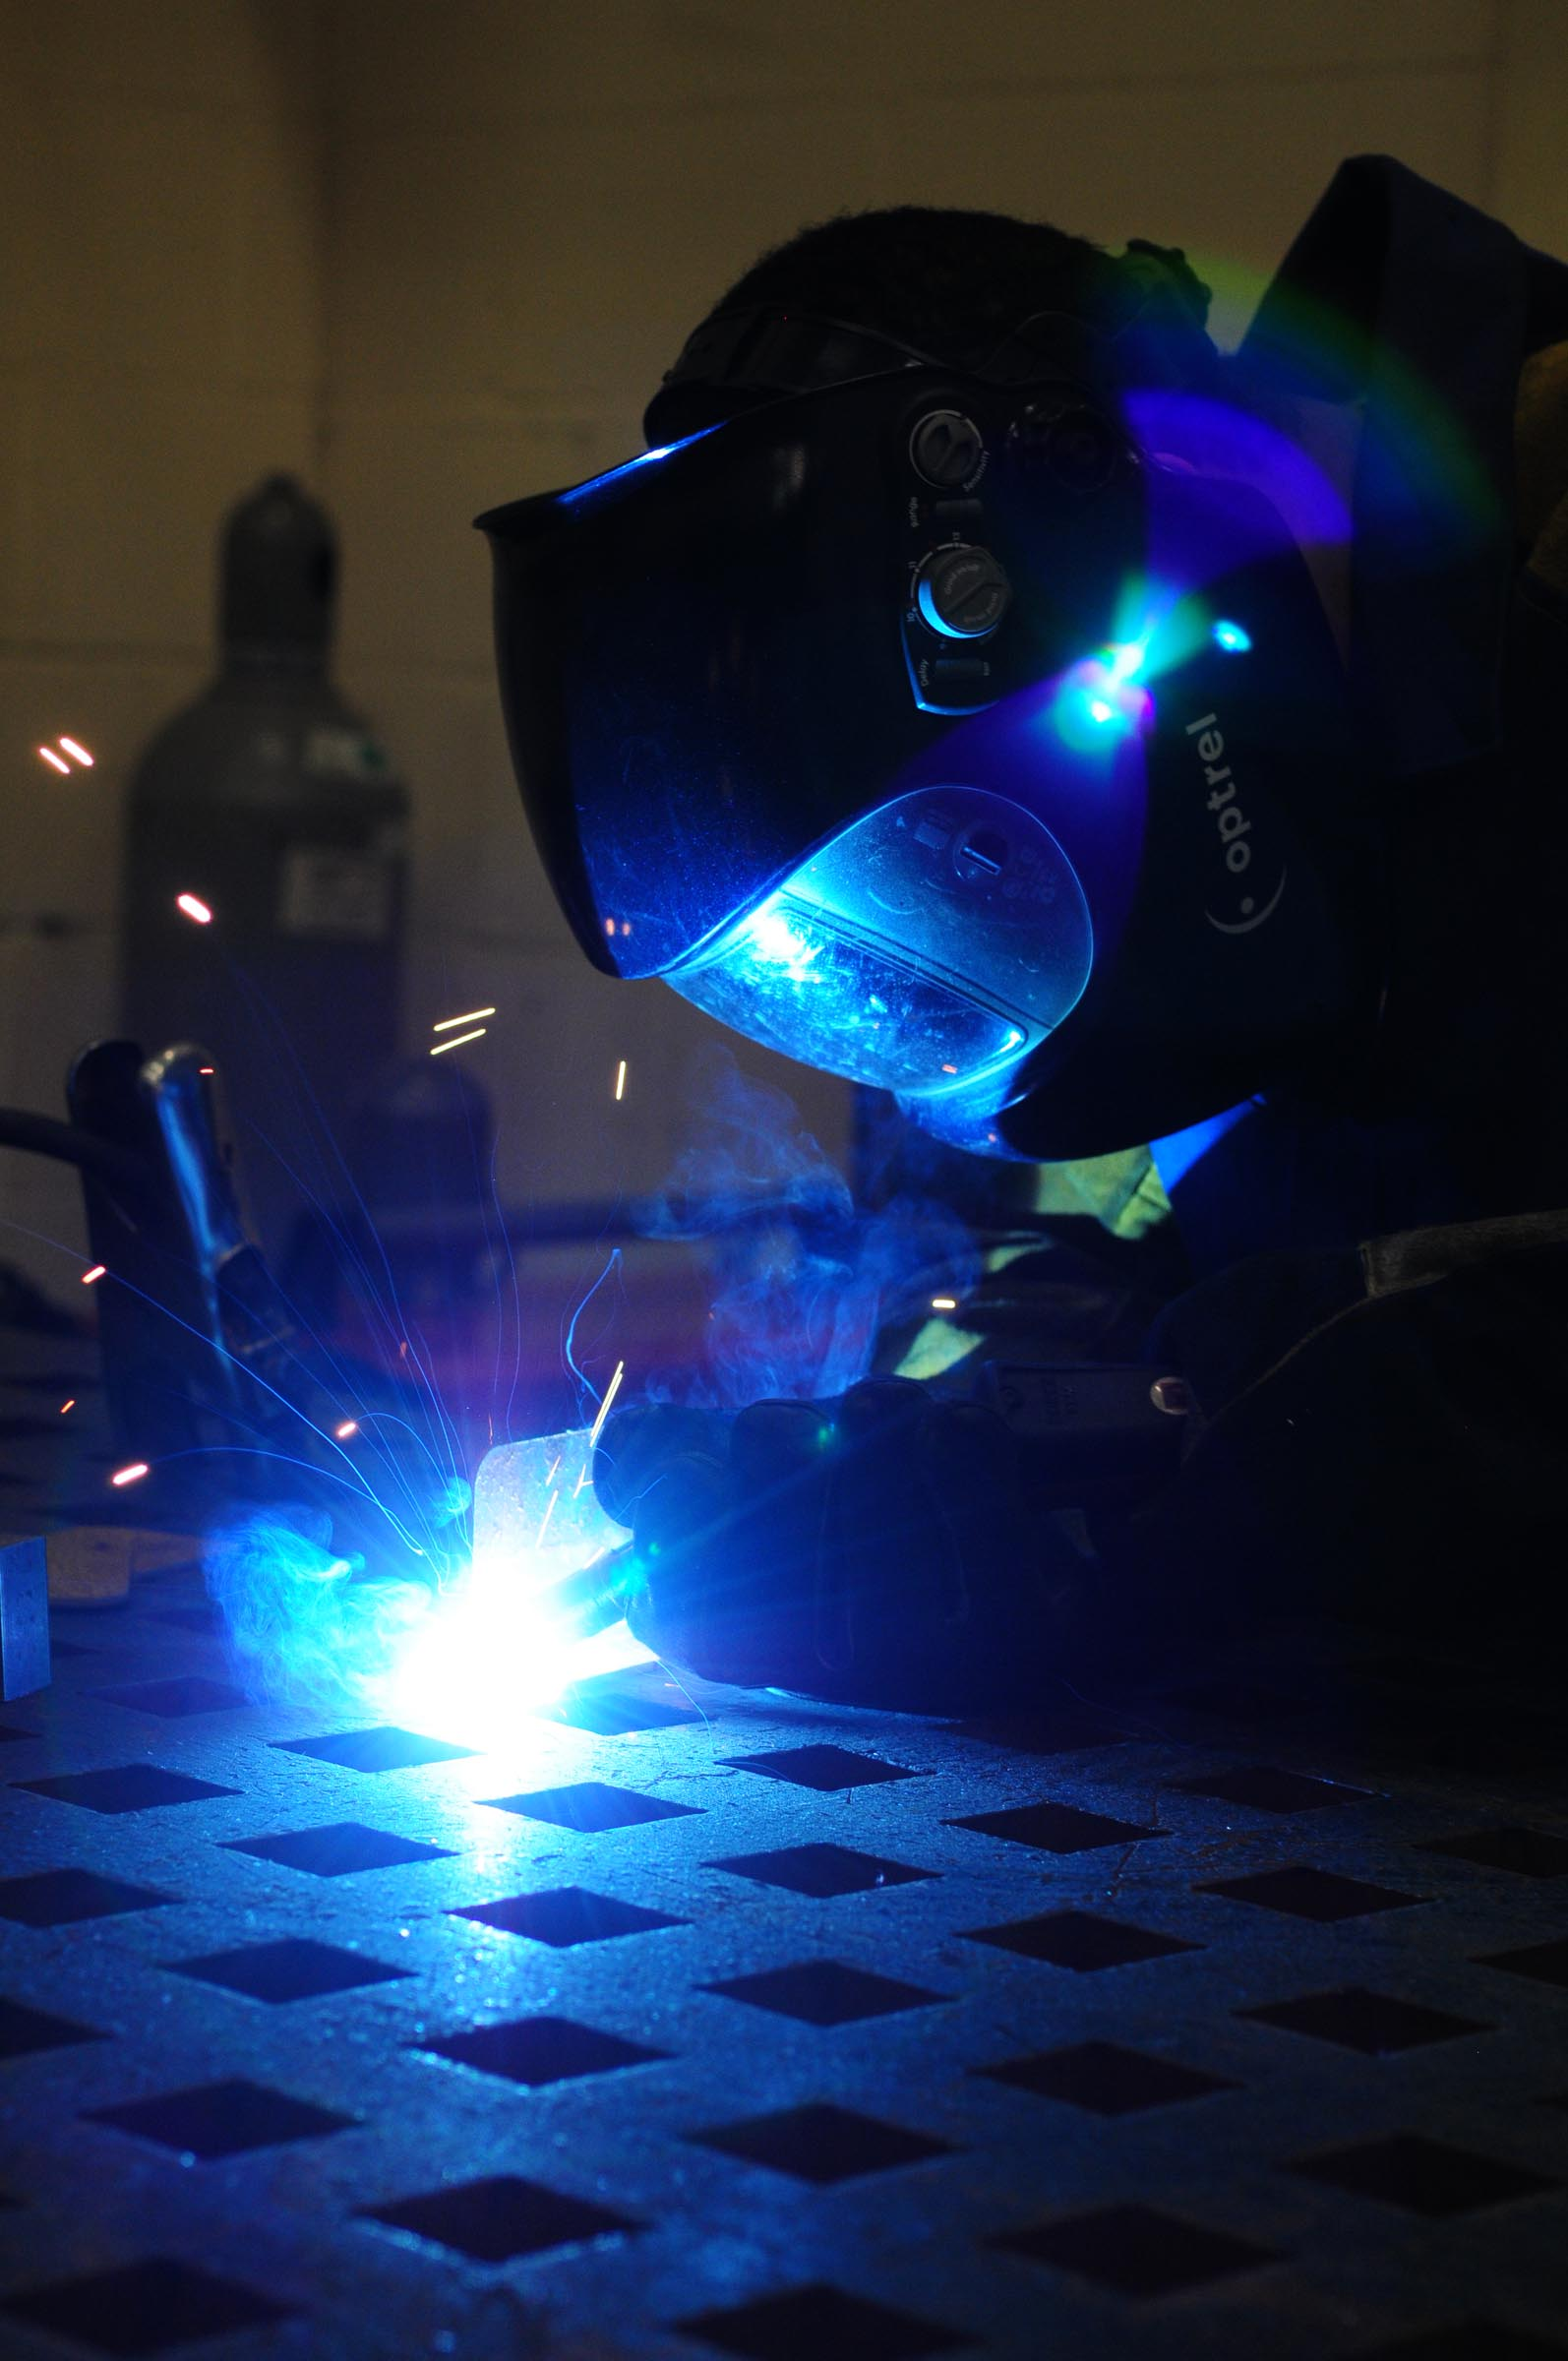 Aircraft Metals Technology Putting Square Pegs In Round